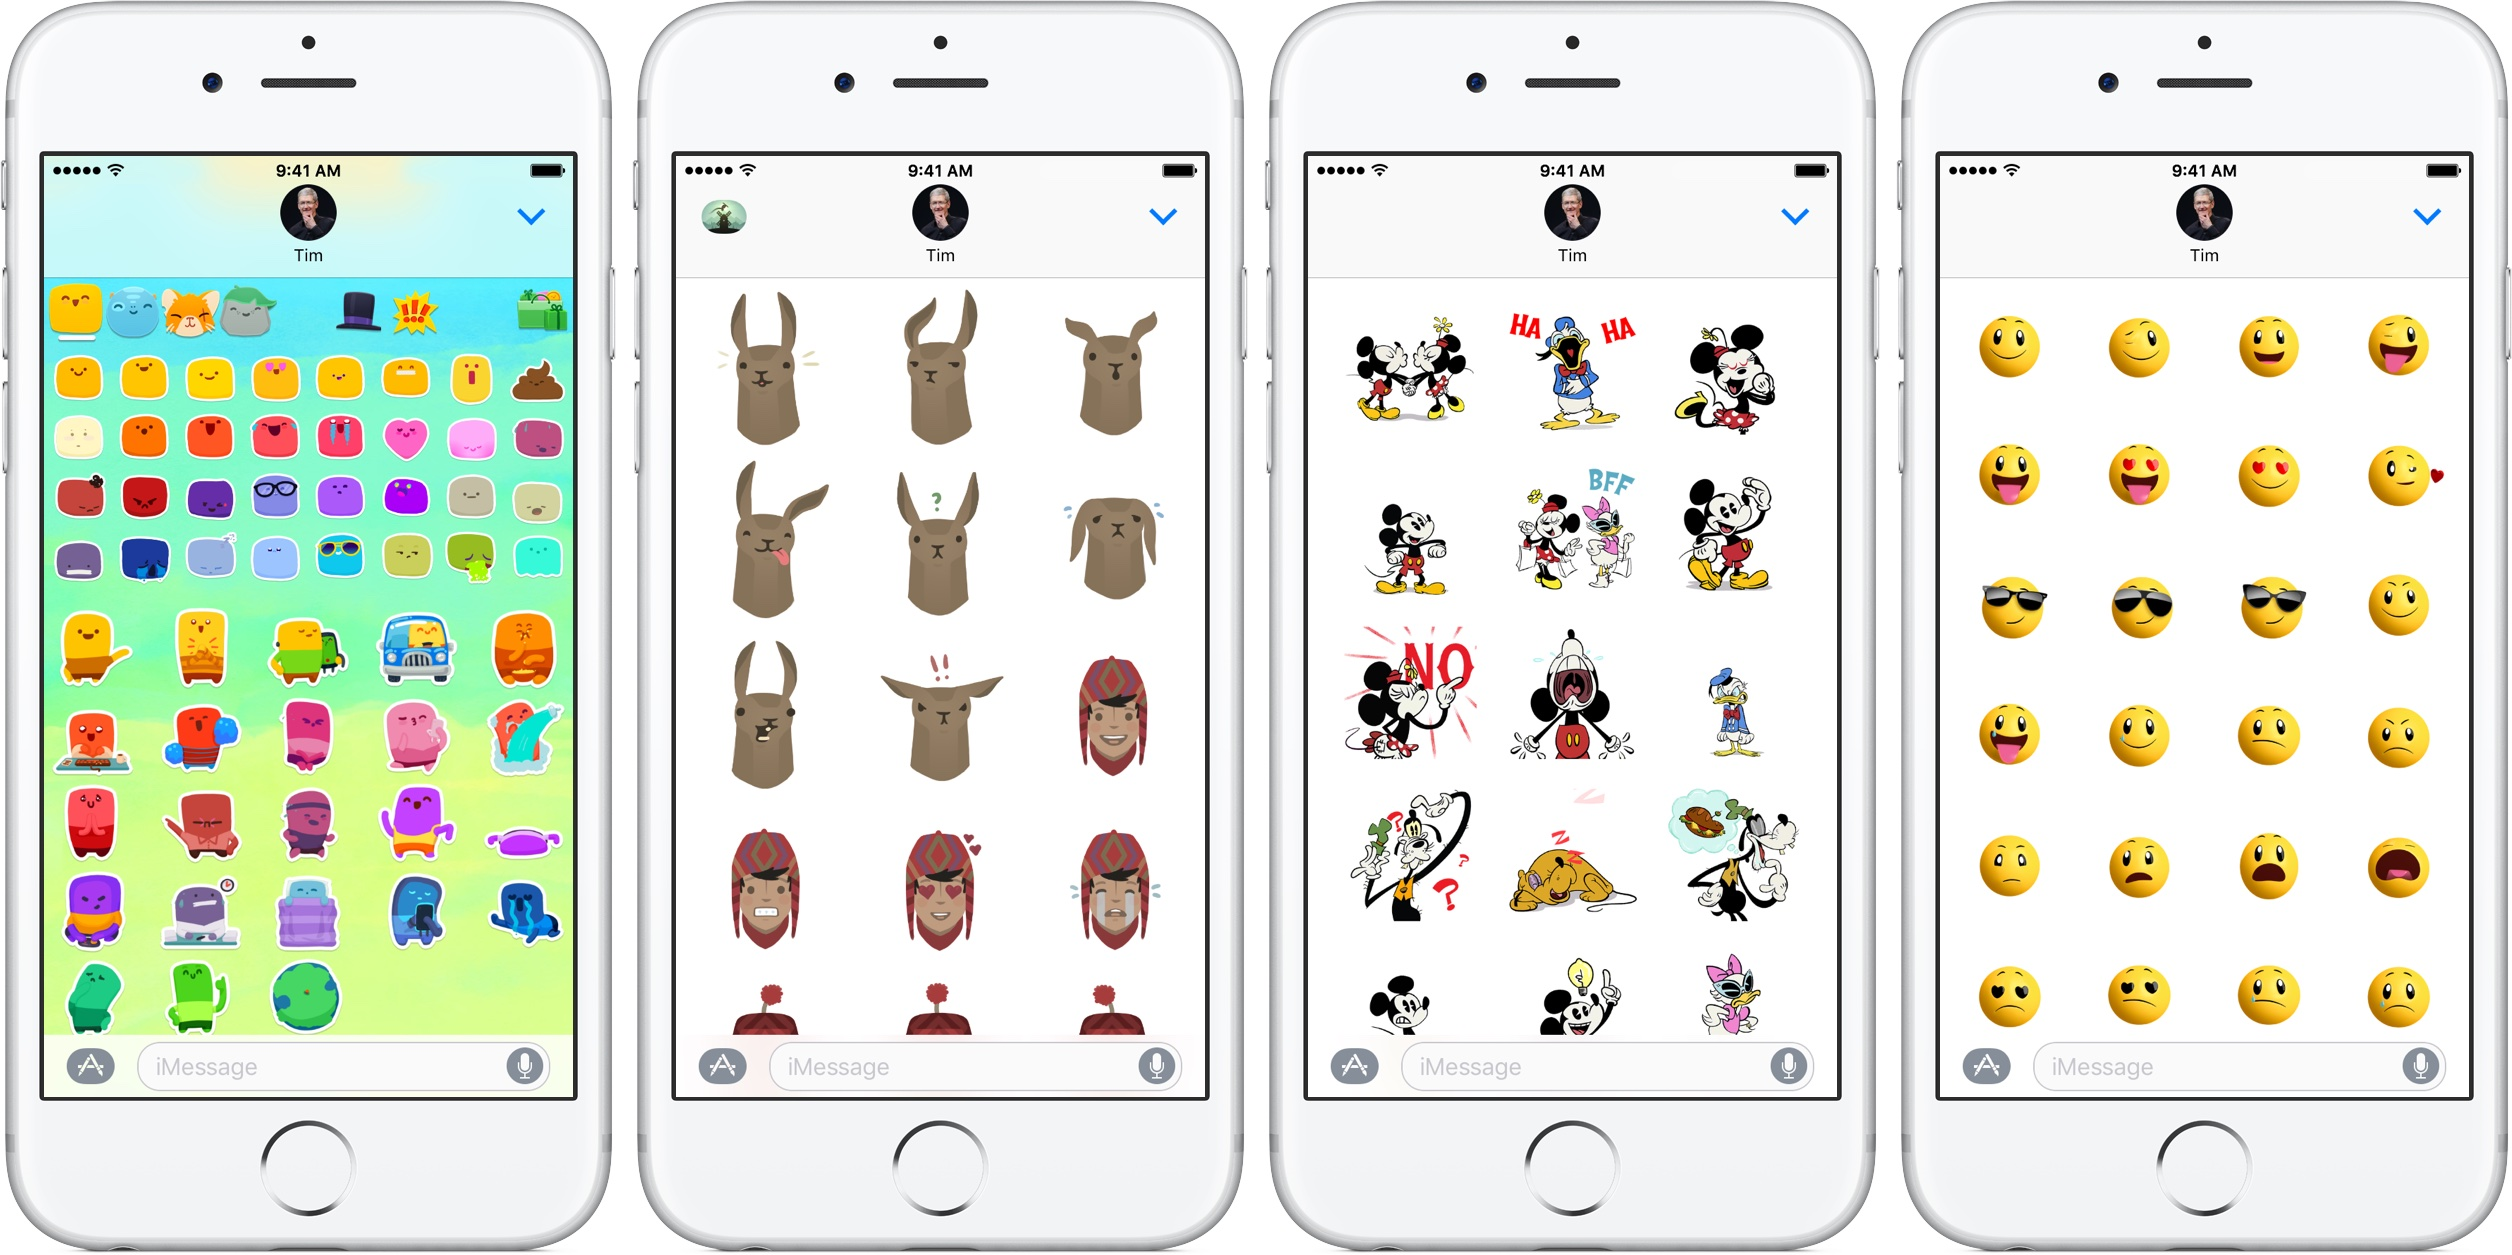 iOS 10 Messages App Store App Shelf browse stickers silver iPhone fullscreen screenshot 001